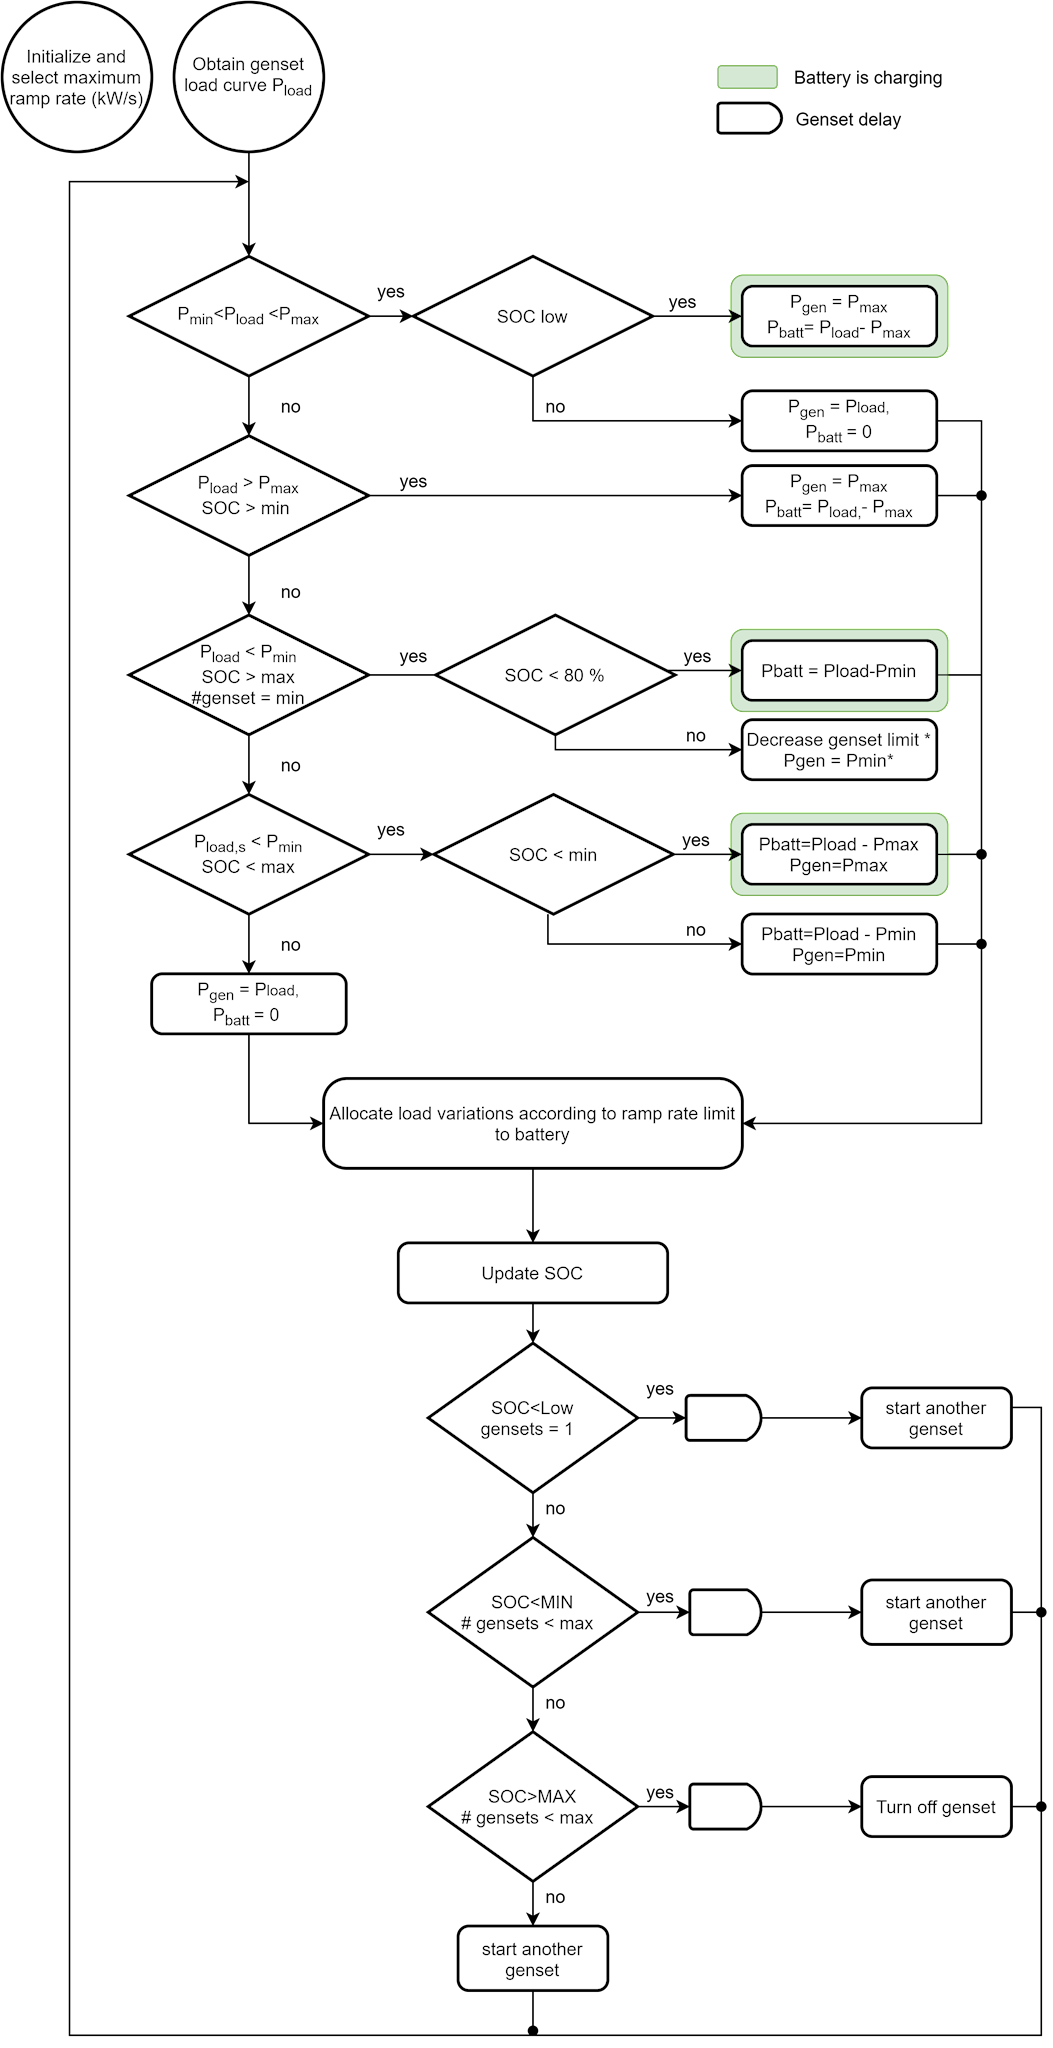 Figure 10: Conceptual flow chart of control strategy.